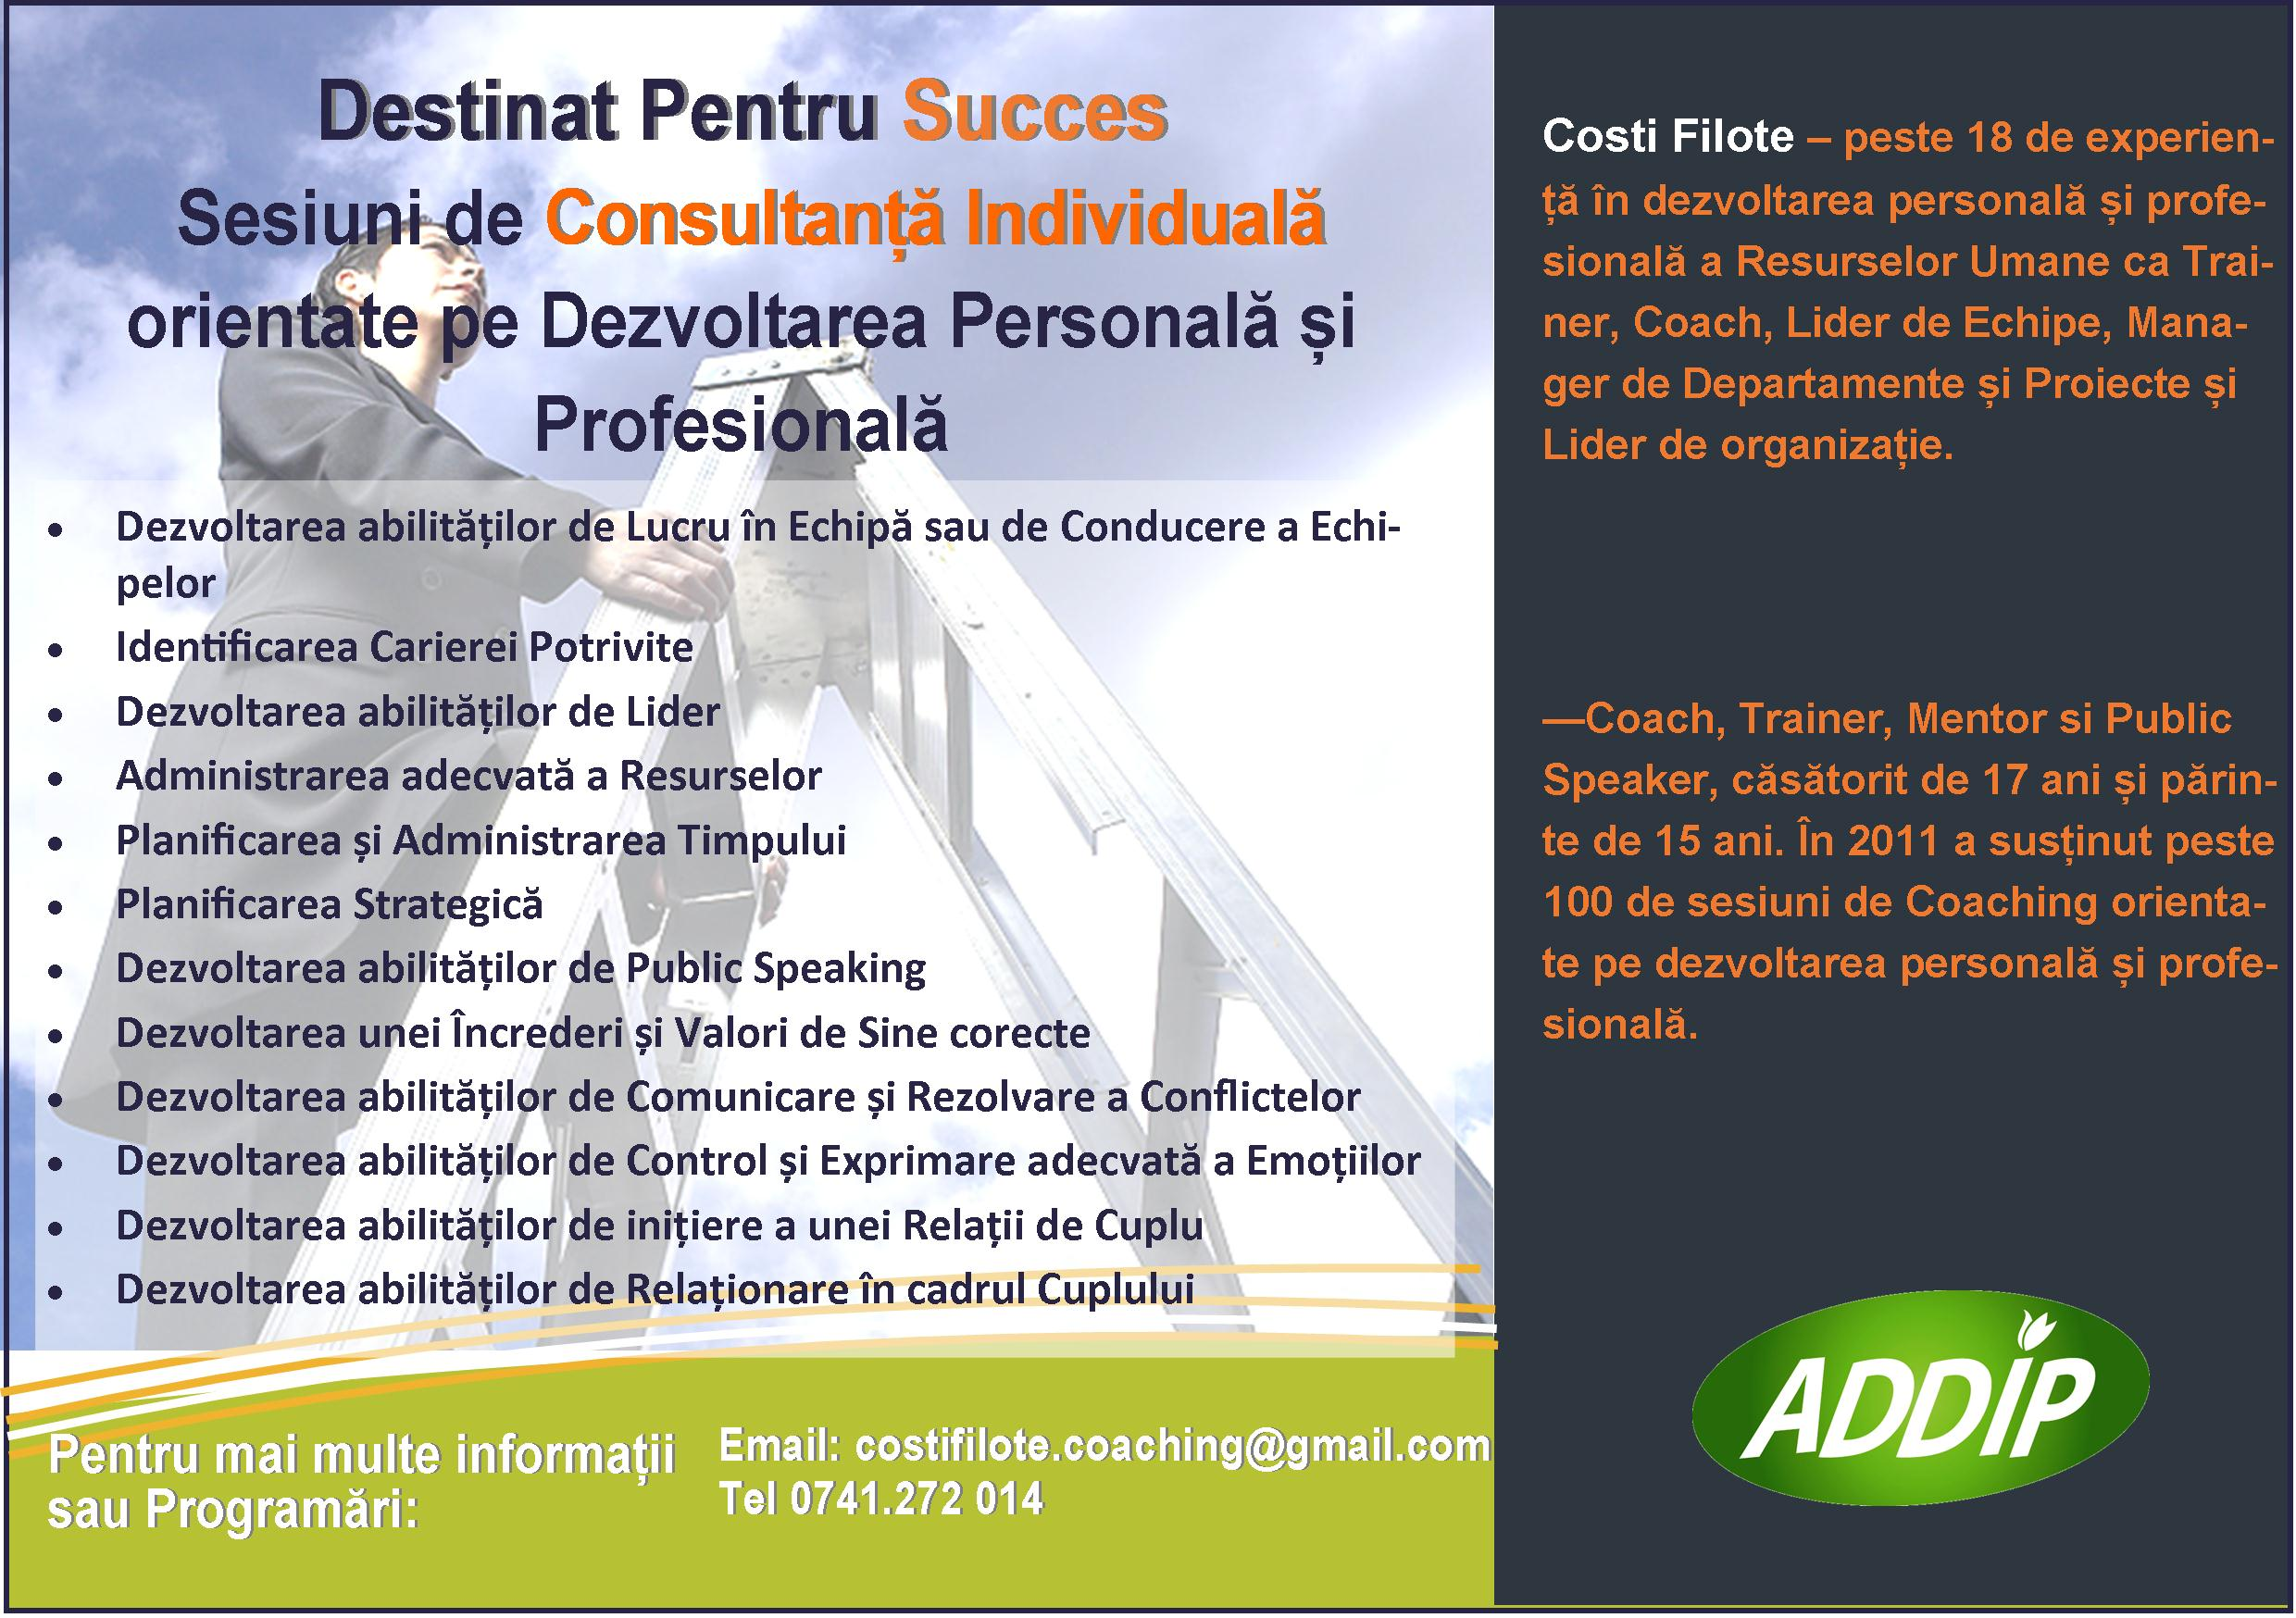 Coaching Costi Filote